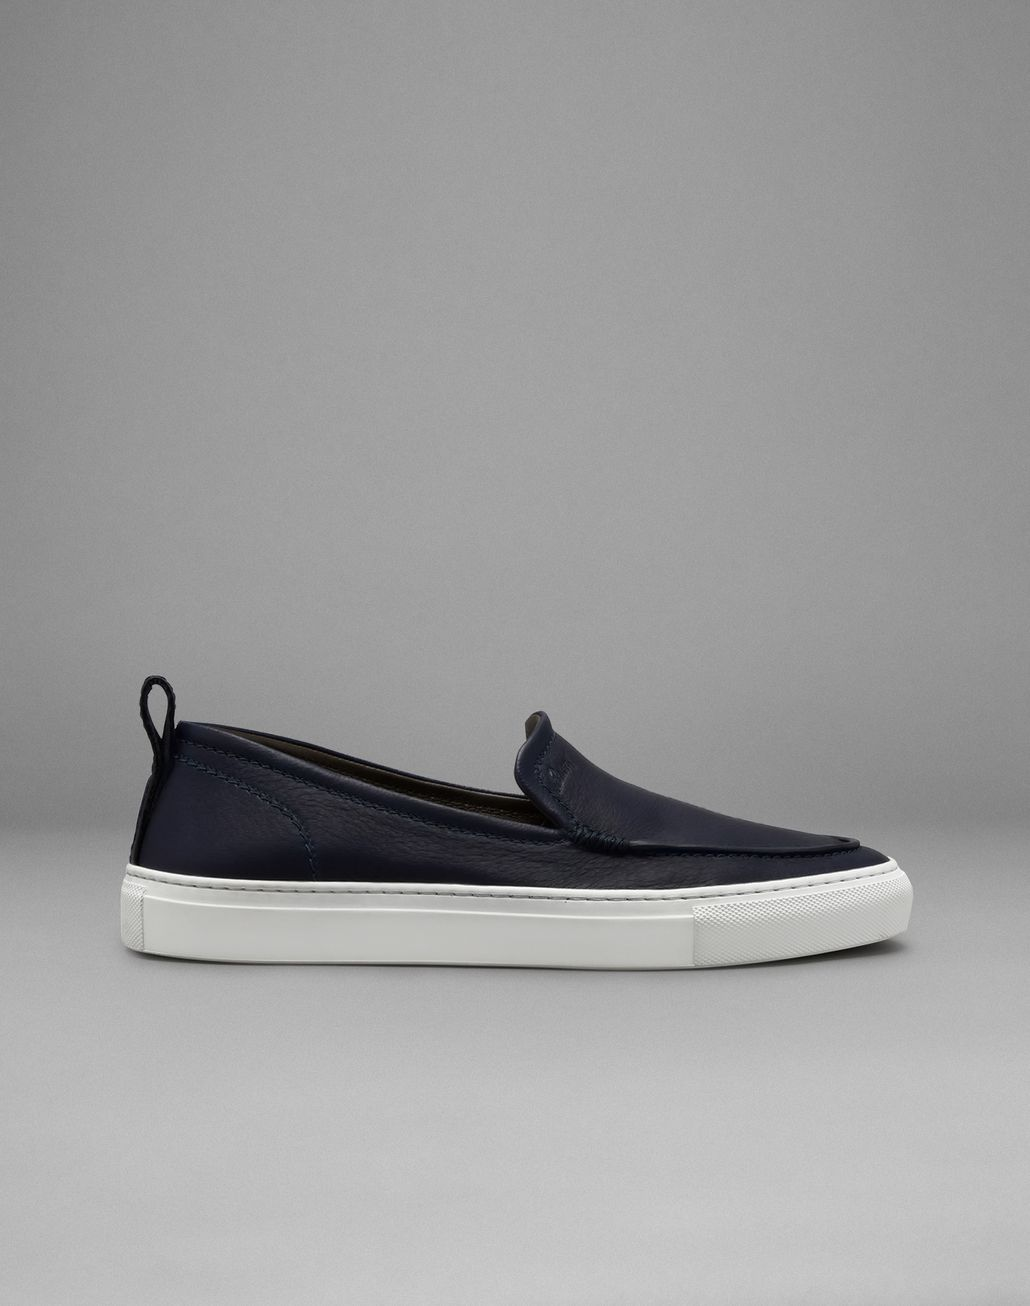 BRIONI Navy Blue Slip-On Sneakers Sneakers Man f